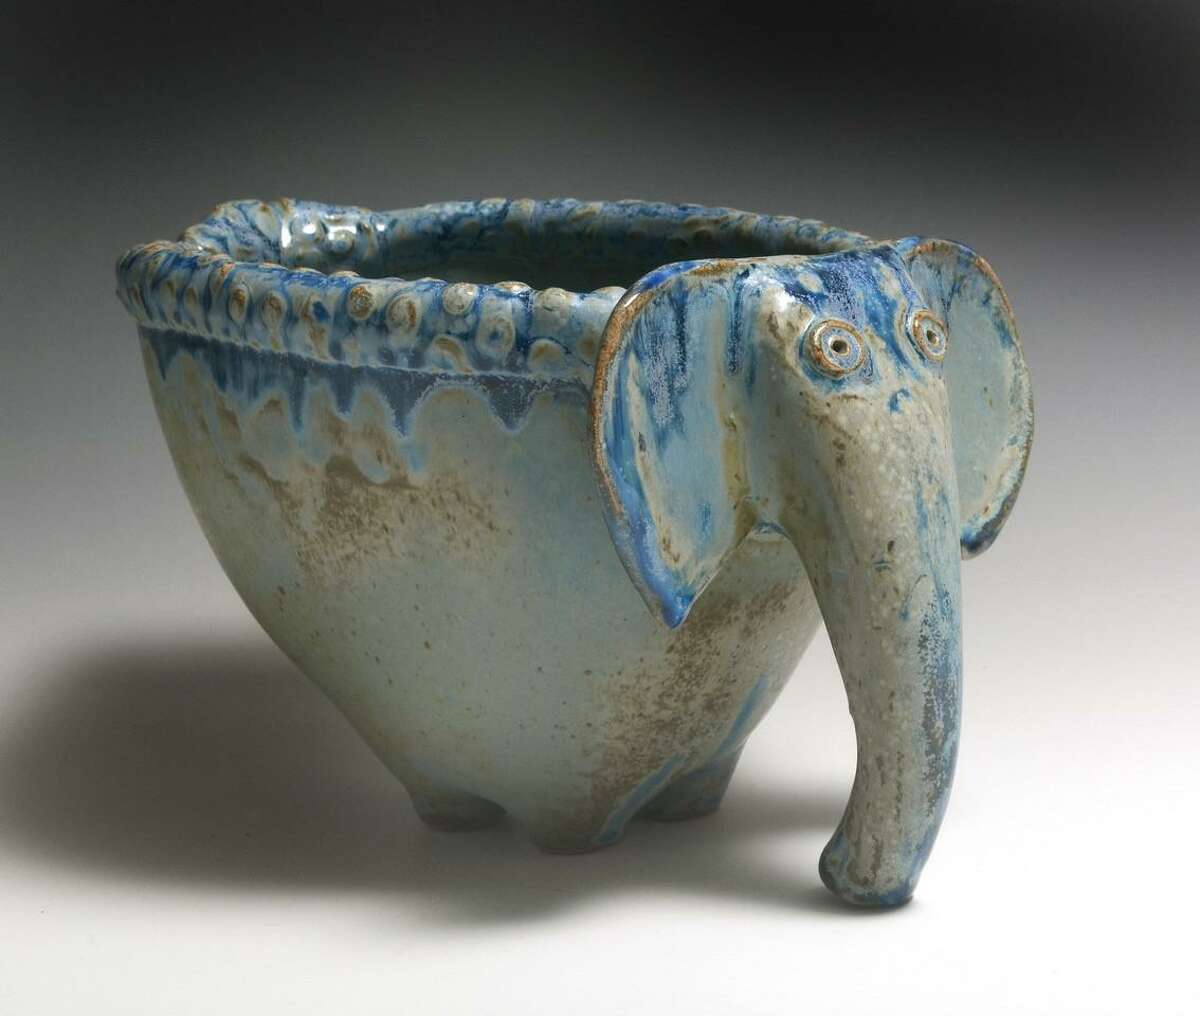 Alison Palmer's clay sculptures are part of the Clayway show in Kent, opening this weekend.